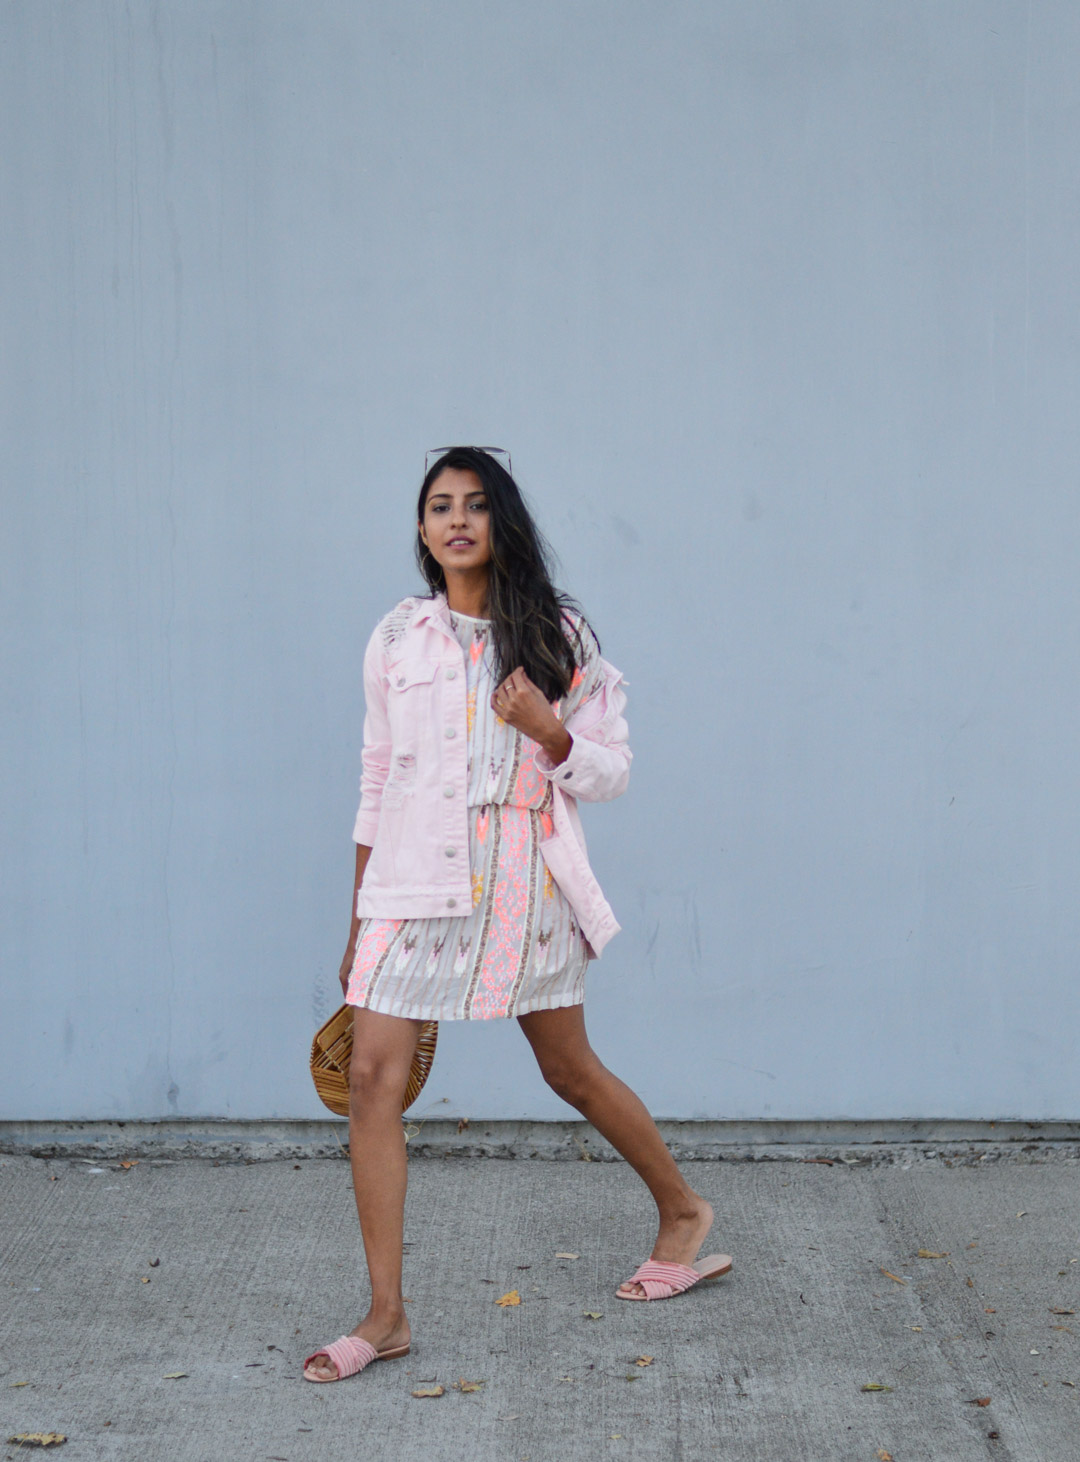 sequin-dress-daytime-pink-NYE-outfit-blogger-style 4